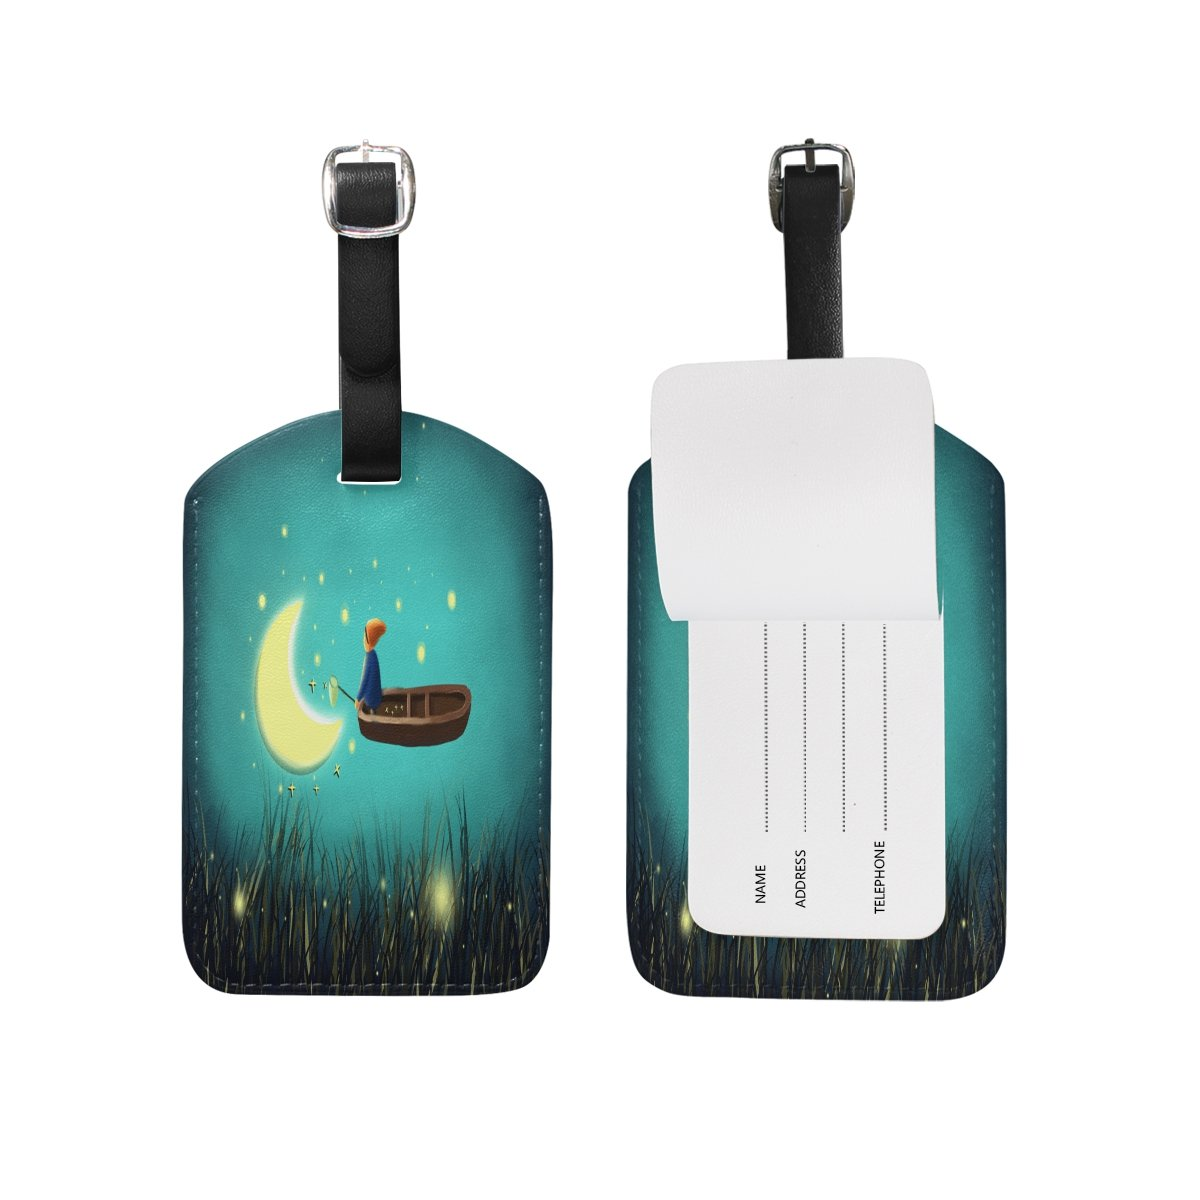 1Pcs Saobao Travel Luggage Tag Wooden Boat Moon Boy PU Leather Baggage Suitcase Travel ID Bag Tag